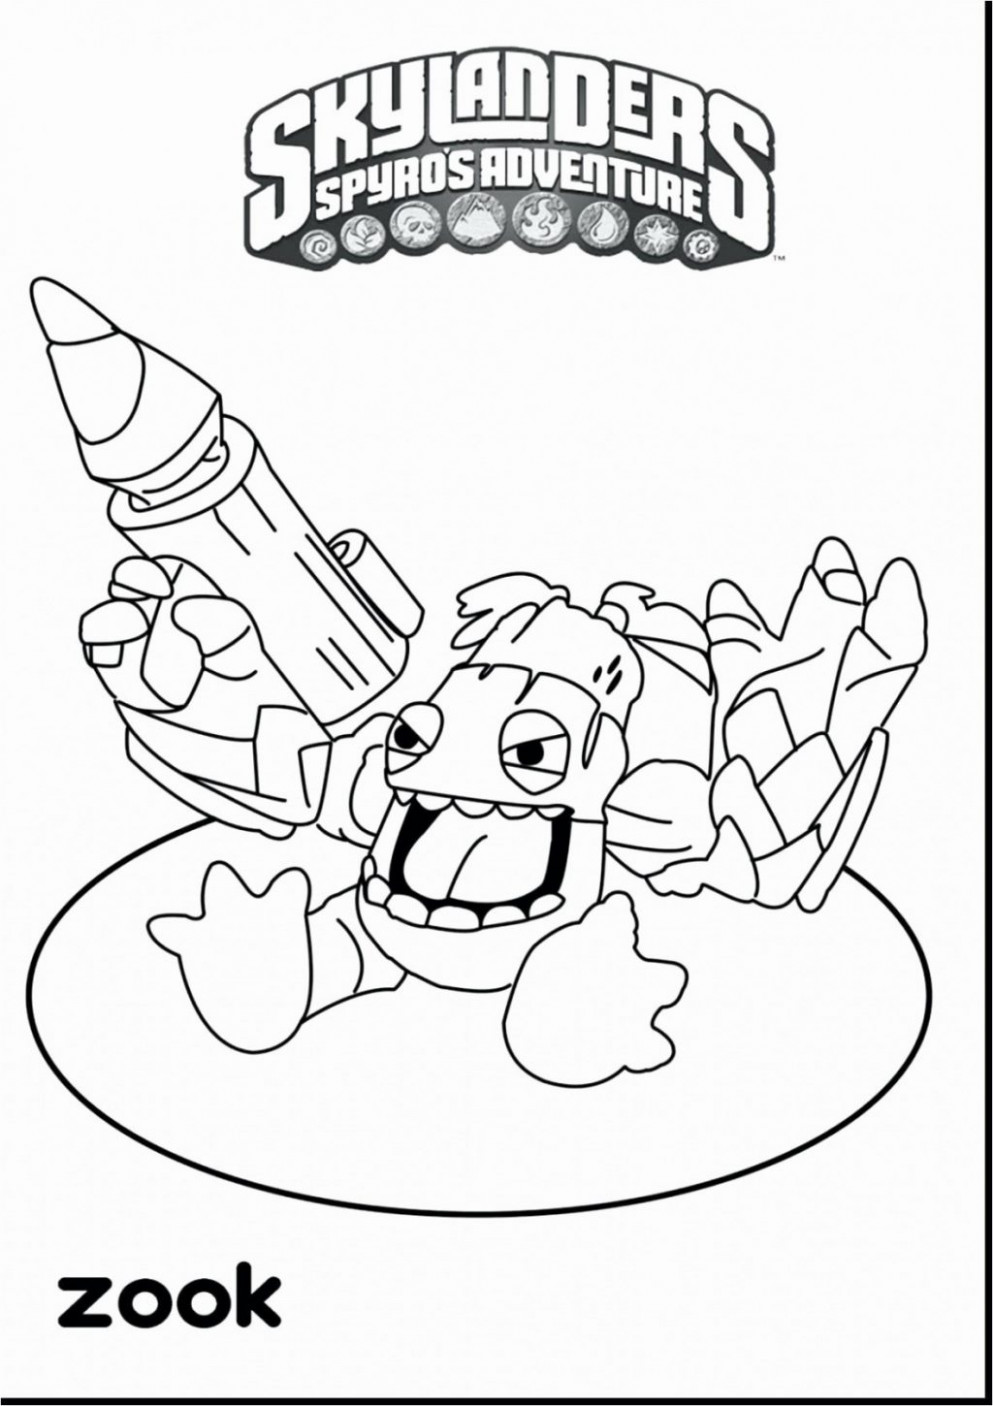 coloring page ~ Small Christmas Coloring Pages Tingameday Com In ..